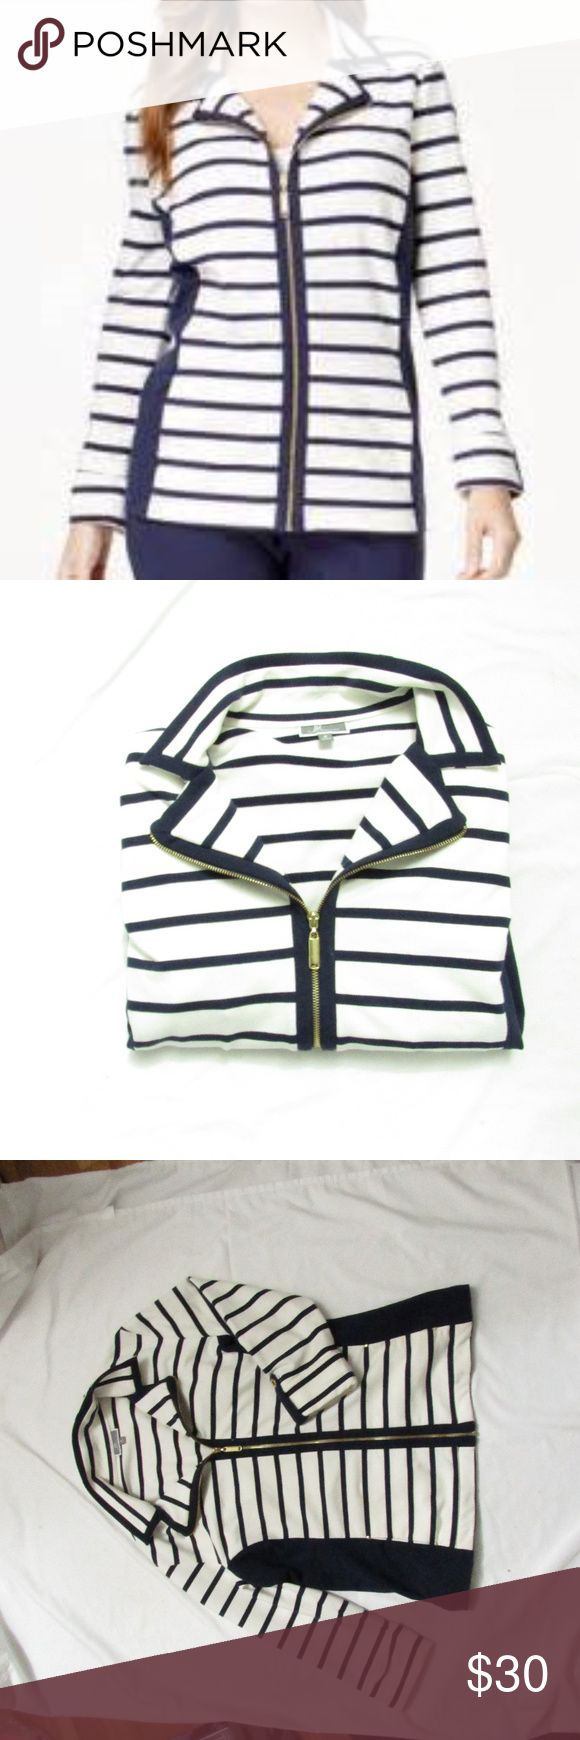 JM Collection Nautical Striped zip jacket Medium JM Collection Nautical Stripe zip up jacket, size medium. White and navy blue with gold zipper and accents. Has a small mark, as shown in photo. JM Collection Jackets & Coats